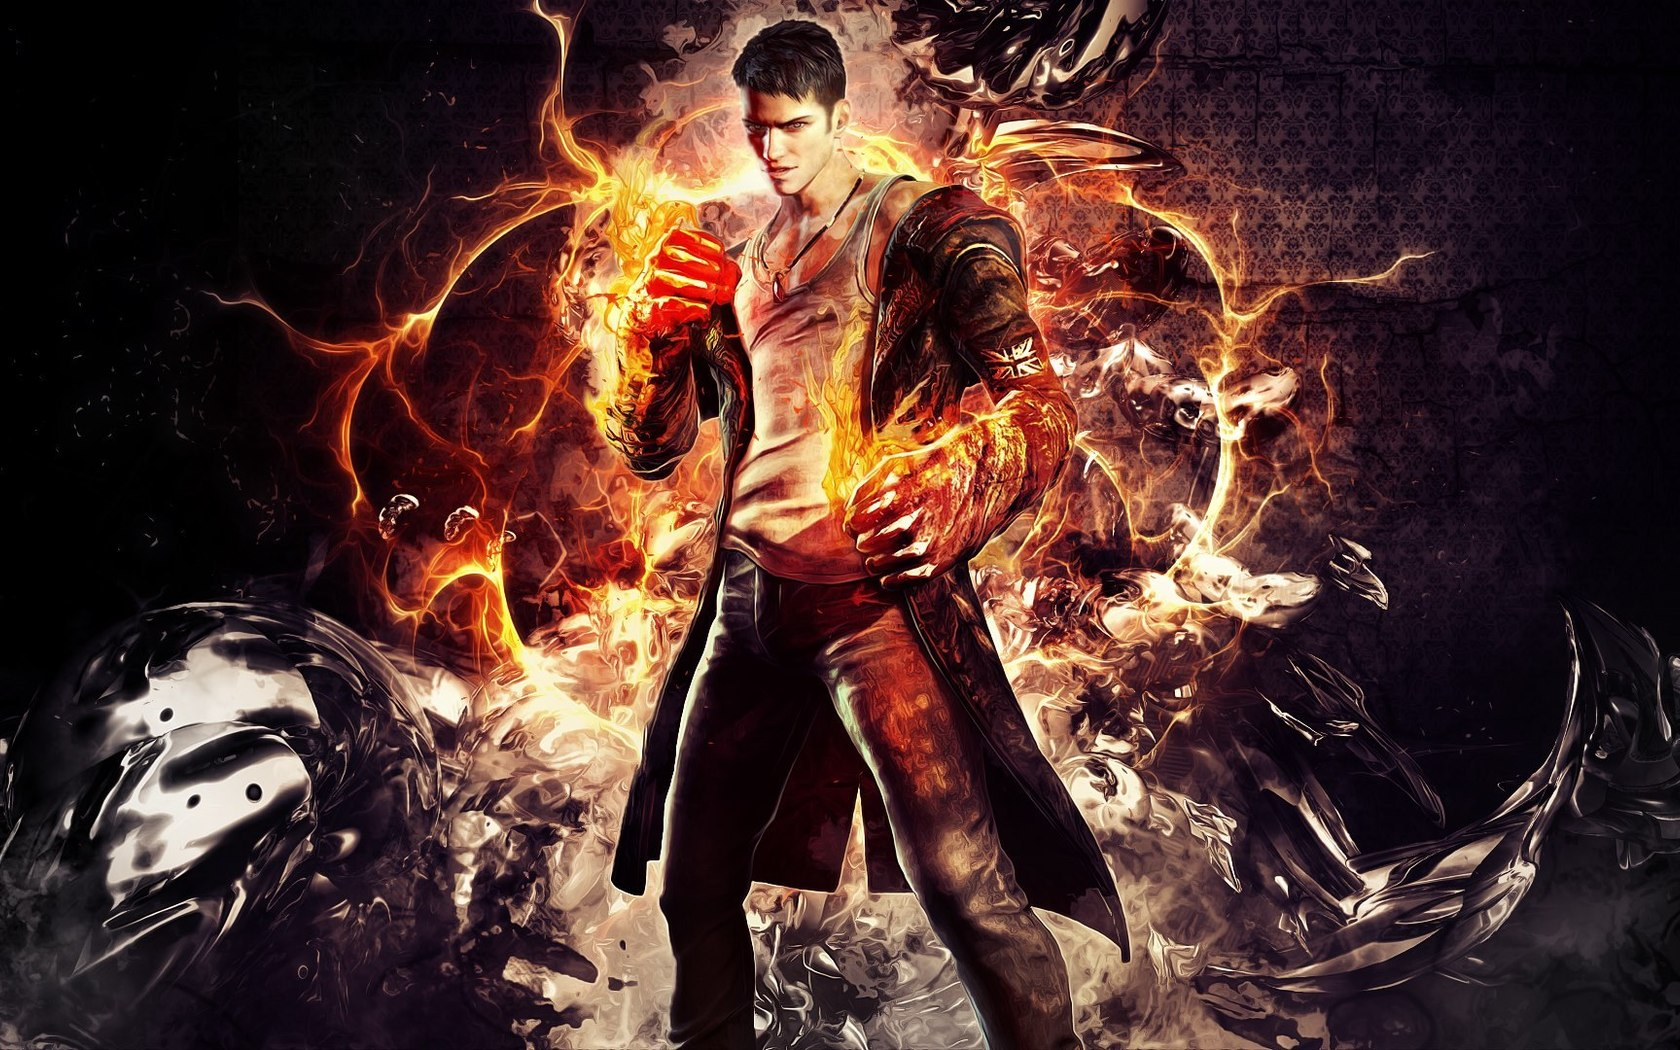 Preview Image. Devil May Cry Loadscreens